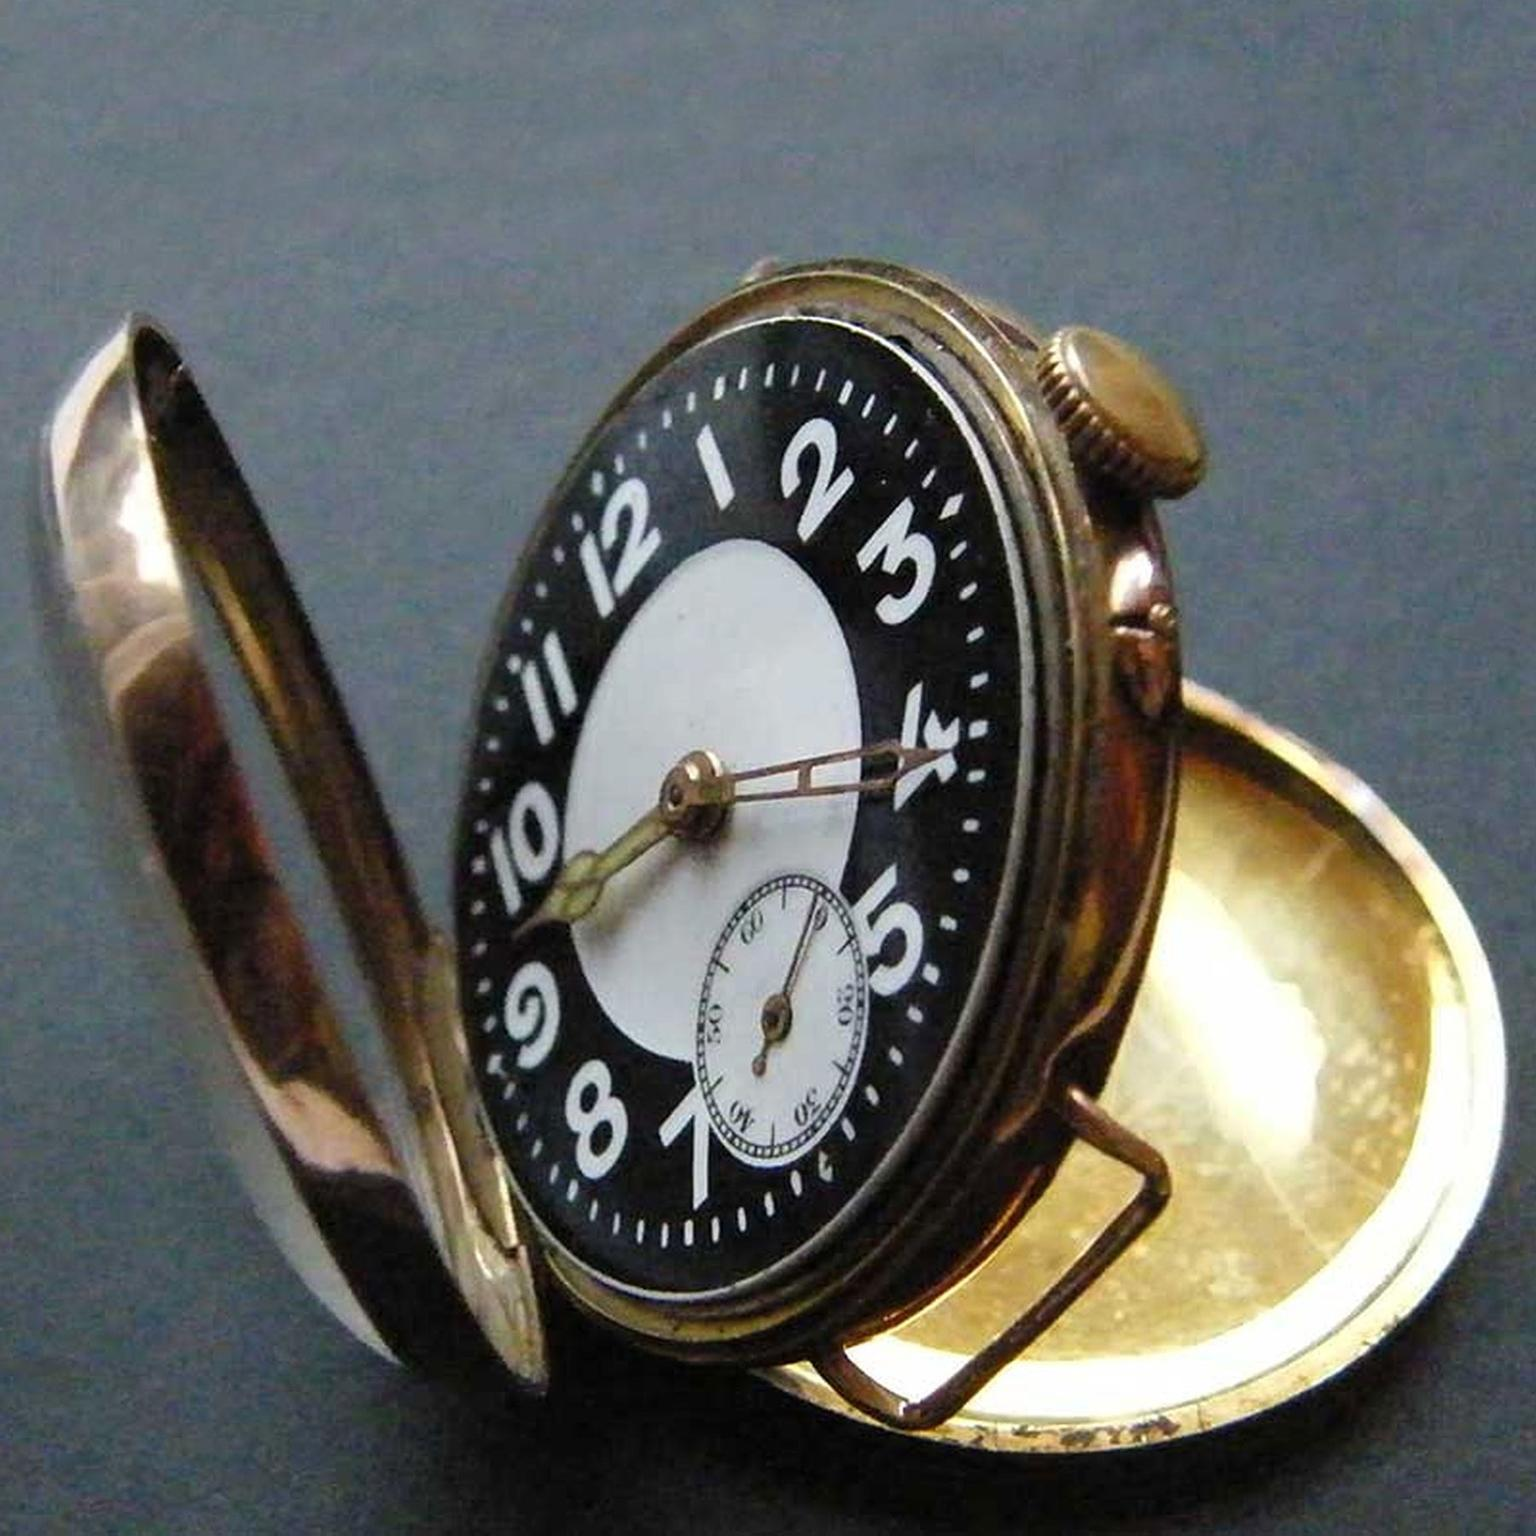 An English military watch from 1916, used by soldiers and pilots during WWI, that illustrates the transition from pocket watch to wristwatch, incorporating features of both.